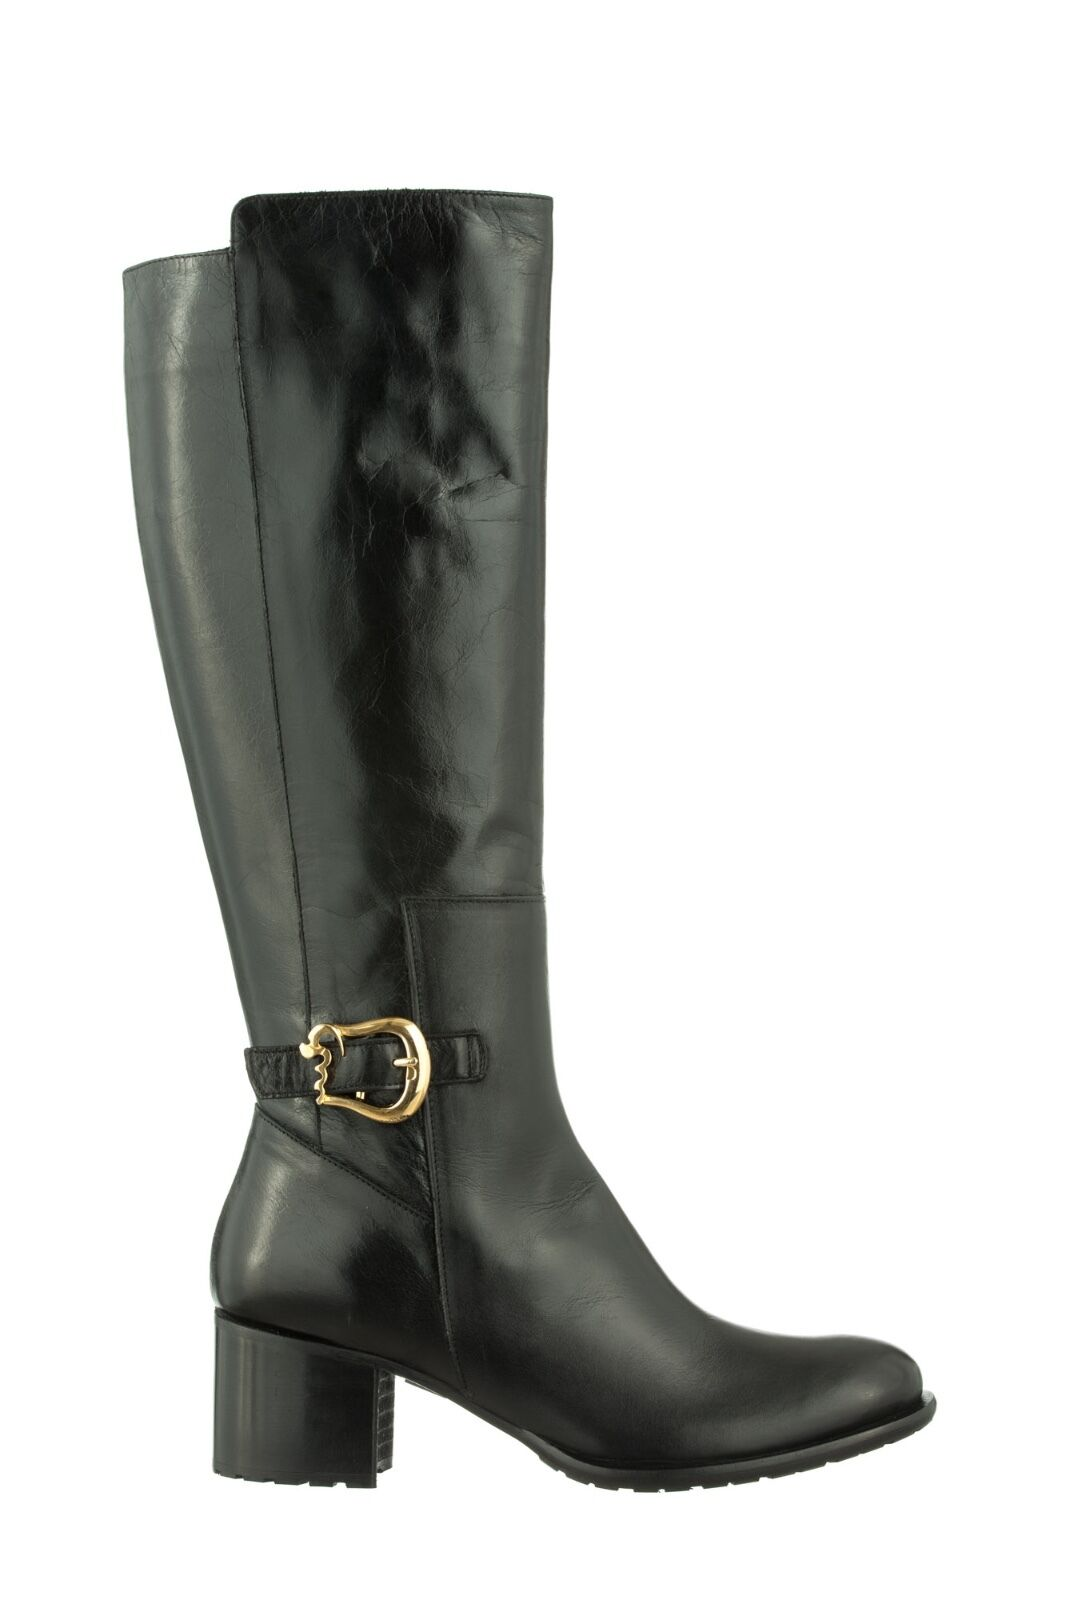 MORI MADE IN ITALY KNEE HEELS HEELS HEELS BOOTS STIEFEL STIVALI SHOES LEATHER BLACK NERO 40 73da96